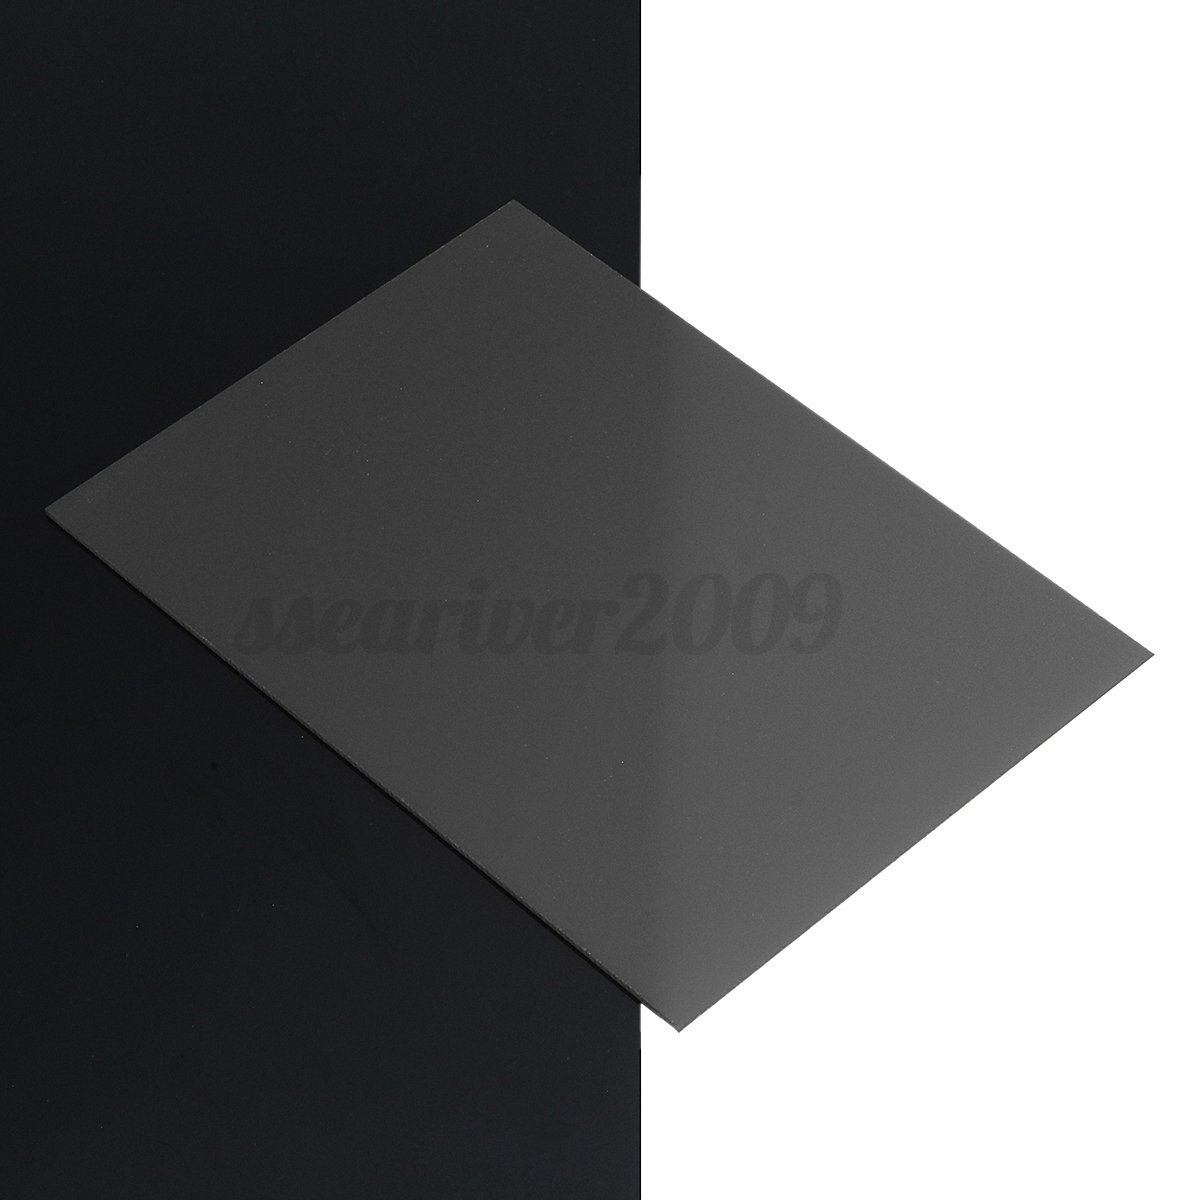 3mm A4 Perspex Acrylic Sheet Plastic Plexiglass Cut To